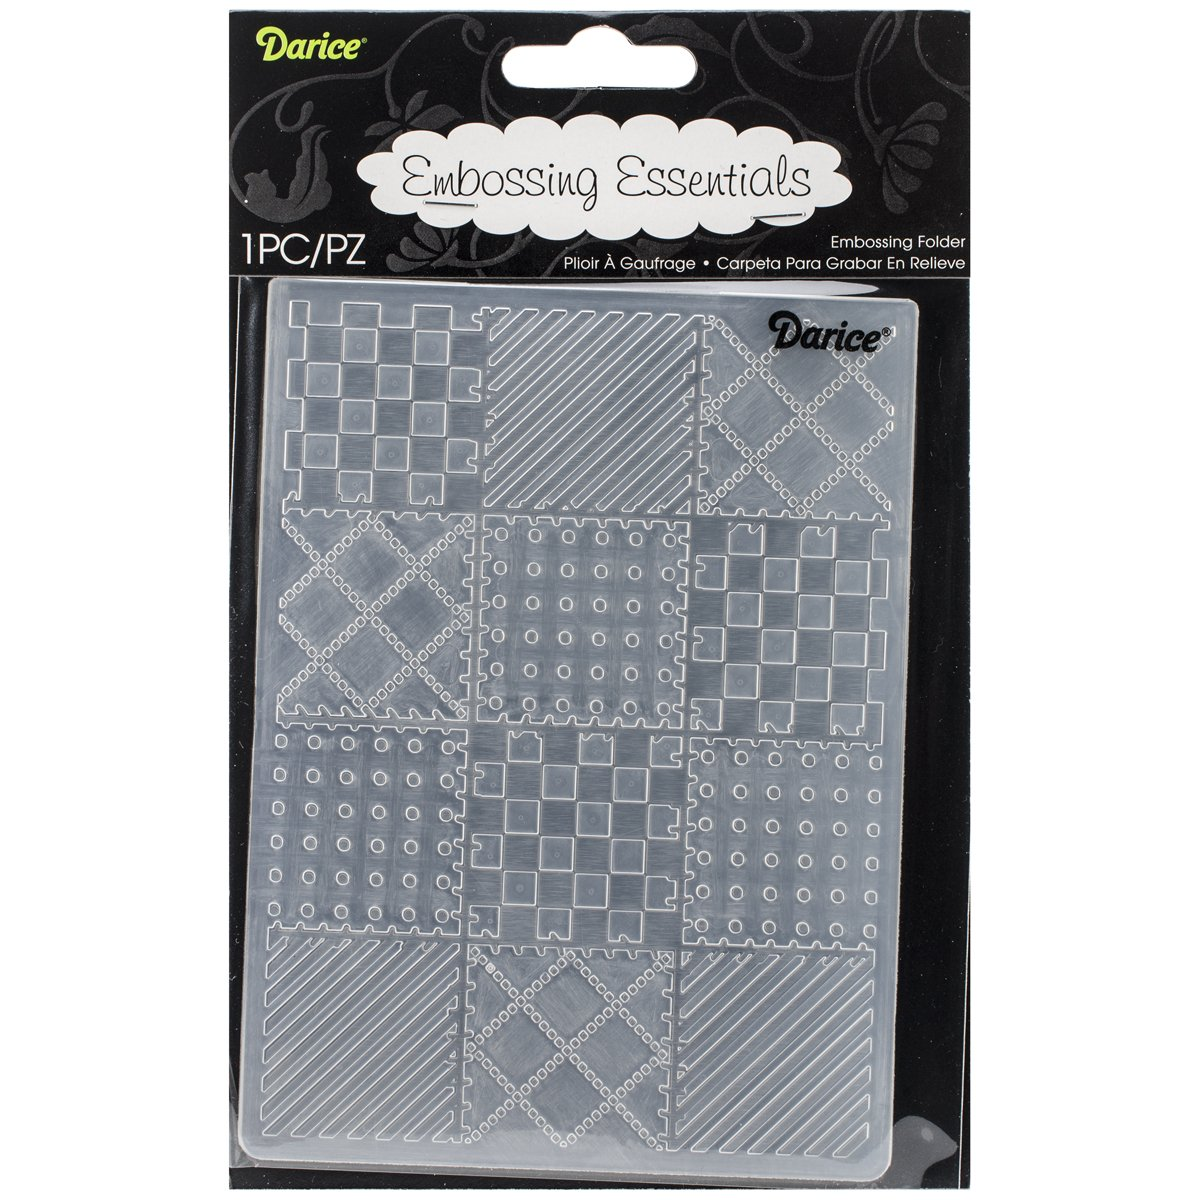 Darice Embossing Folder, 4.25 by 5.75-Inch, Quilt Blocks EB12-19131